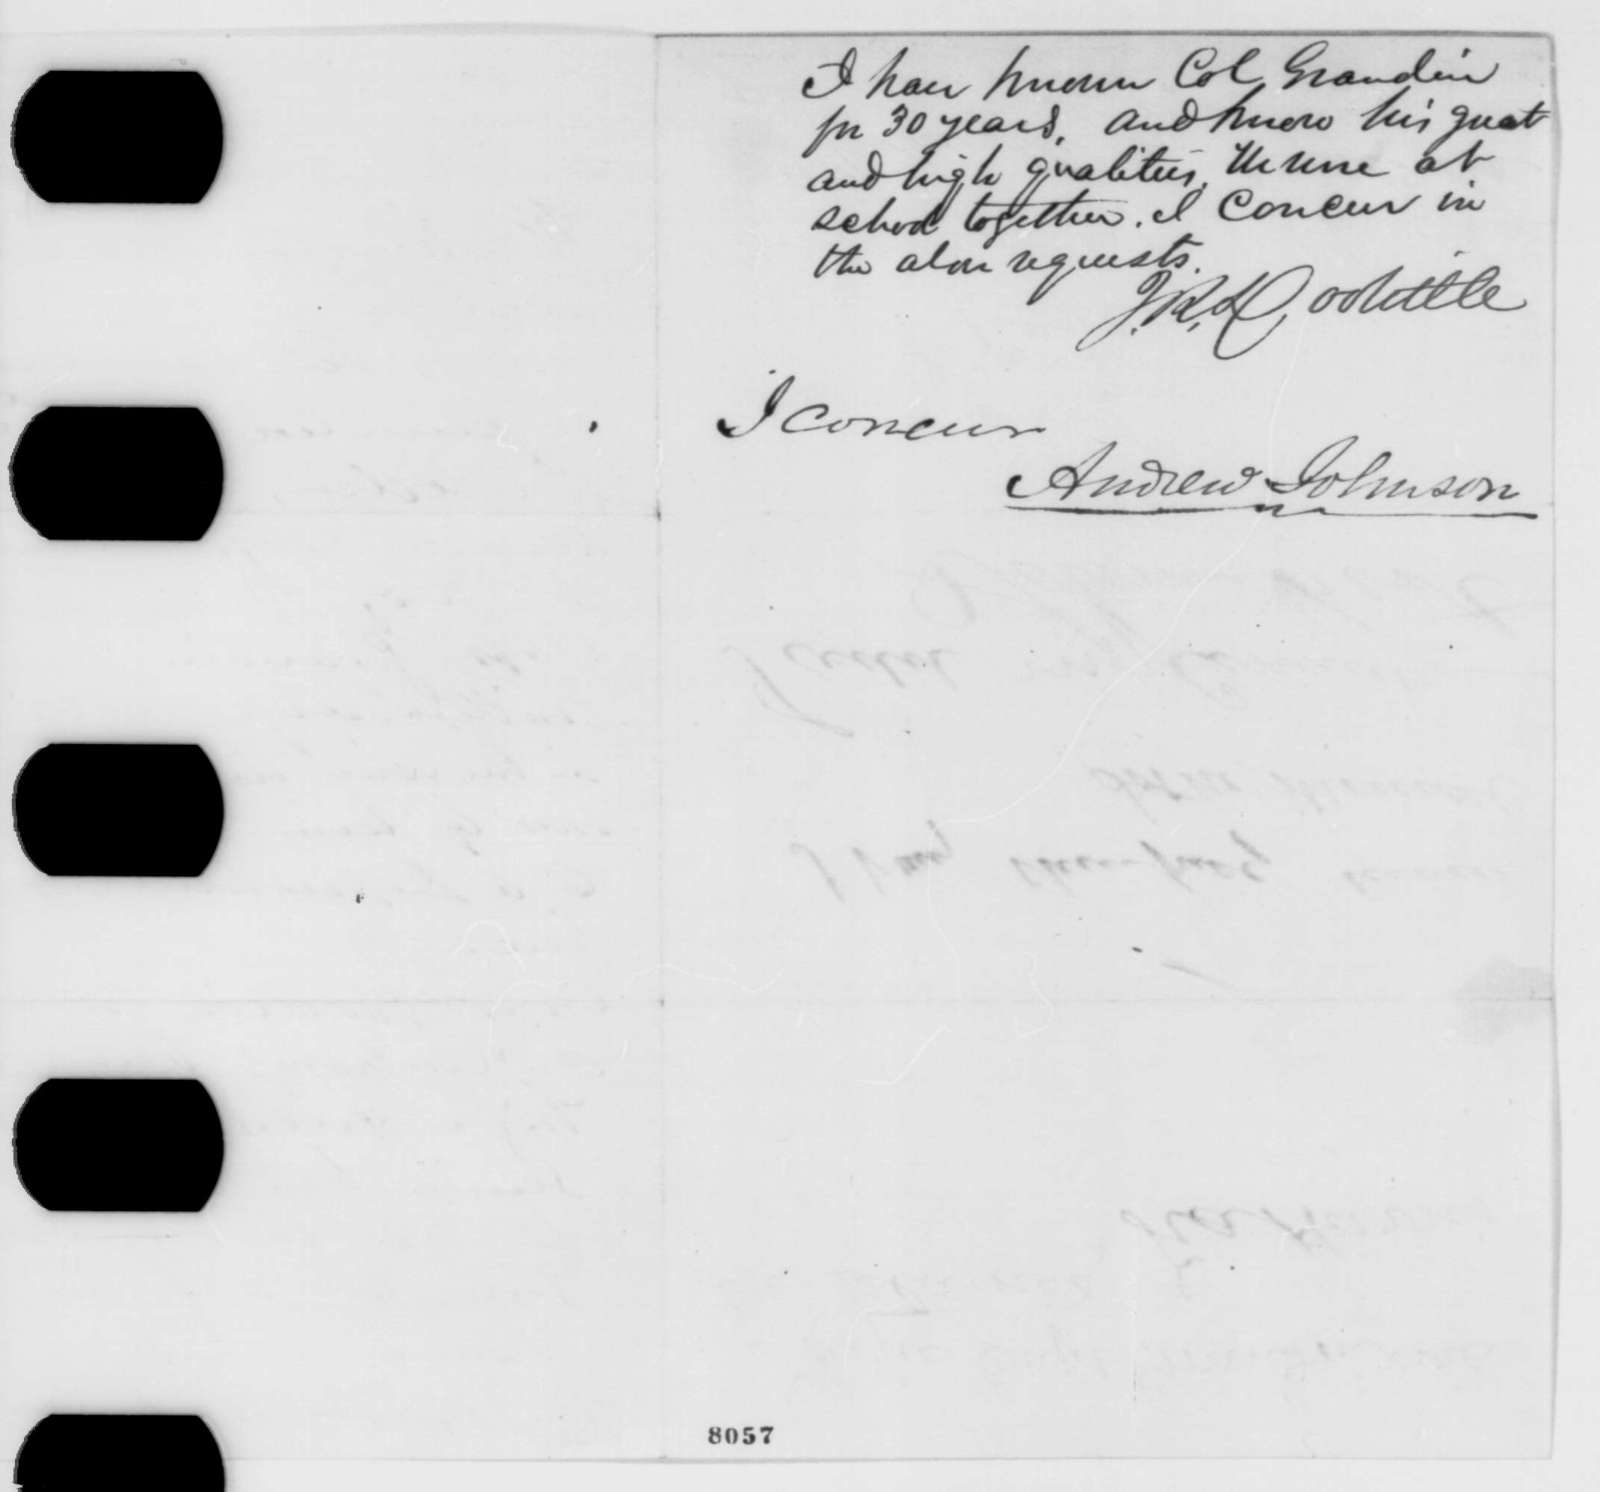 B. Hosmer, et al. to James M. Edmunds, Wednesday, March 13, 1861  (Petition of recommendation)